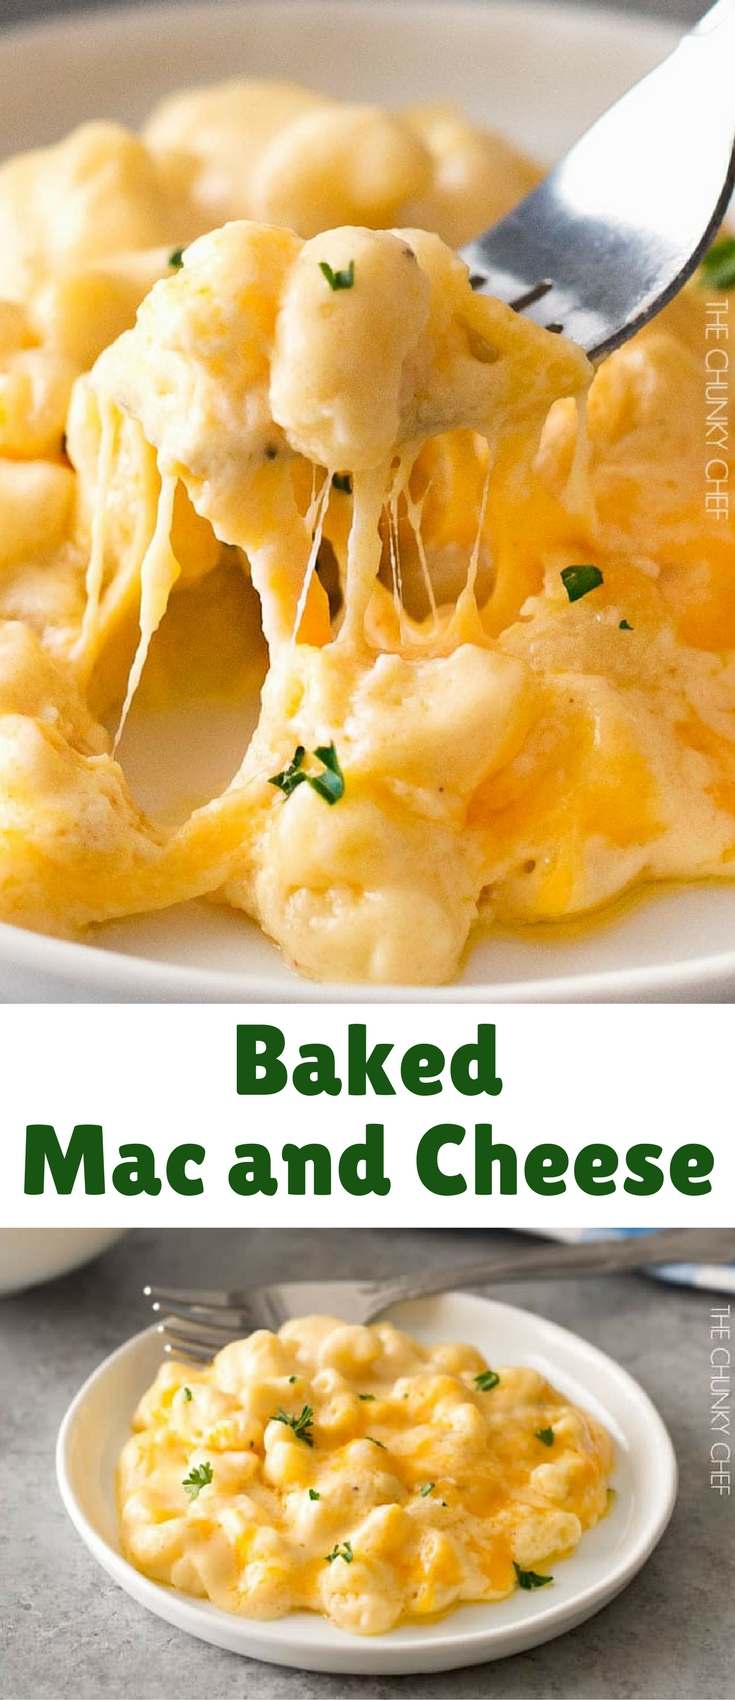 This baked mac and cheese is a family favorite recipe, loved by children and adults. My version uses a combination of cheeses for a gloriously cheesy dish!